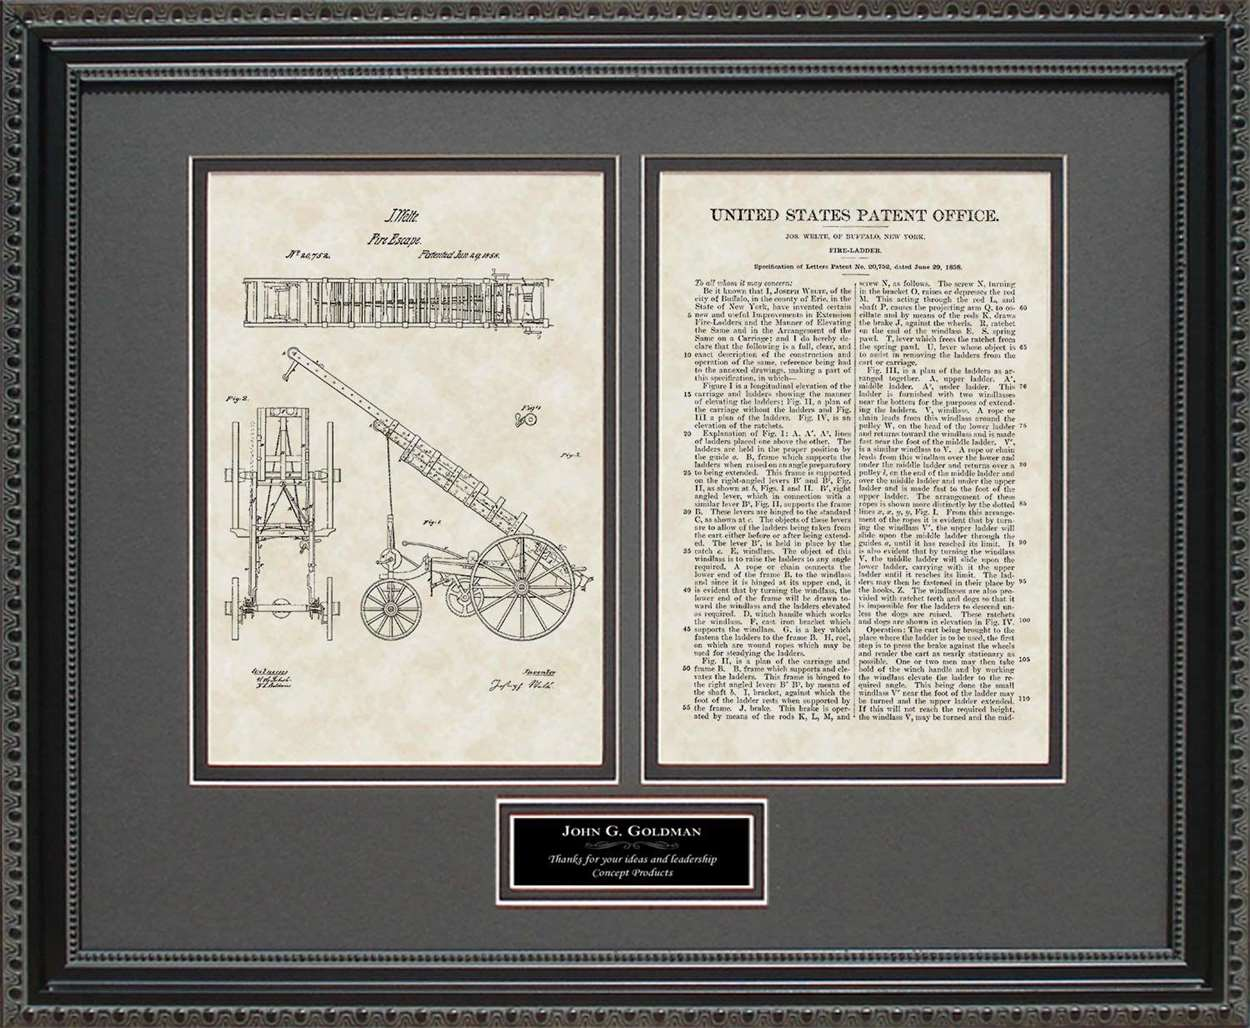 Personalized Fire Ladder Truck Patent, Art & Copy, Welte, 1858